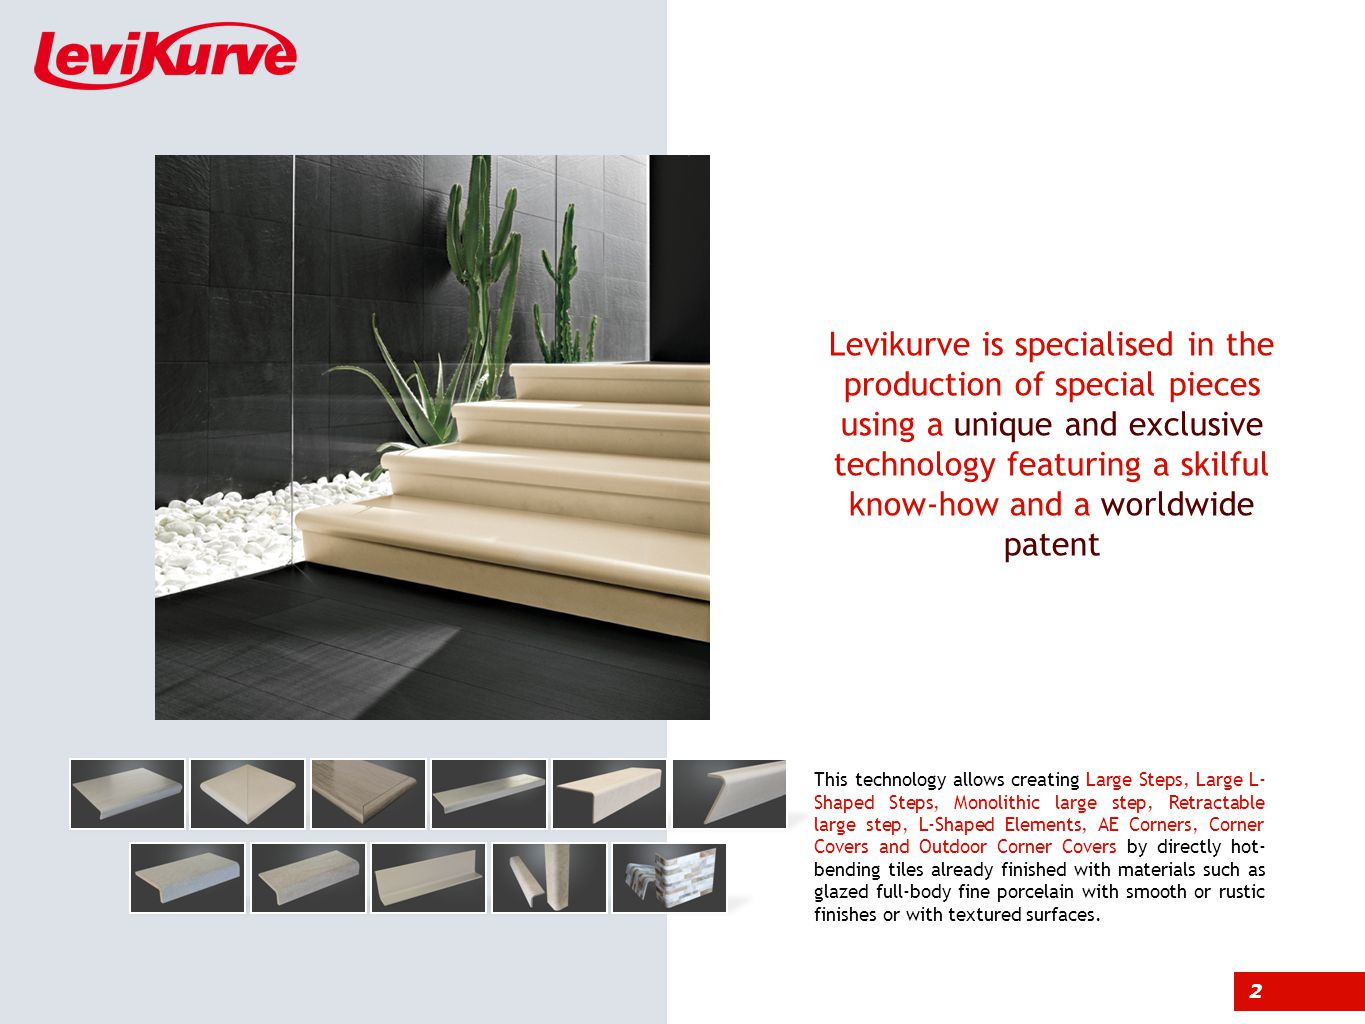 2 This technology allows creating Large Steps, Large L- Shaped Steps, Monolithic large step, Retractable large step, L-Shaped Elements, AE Corners, Corner Covers and Outdoor Corner Covers by directly hot- bending tiles already finished with materials such as glazed full-body fine porcelain with smooth or rustic finishes or with textured surfaces.